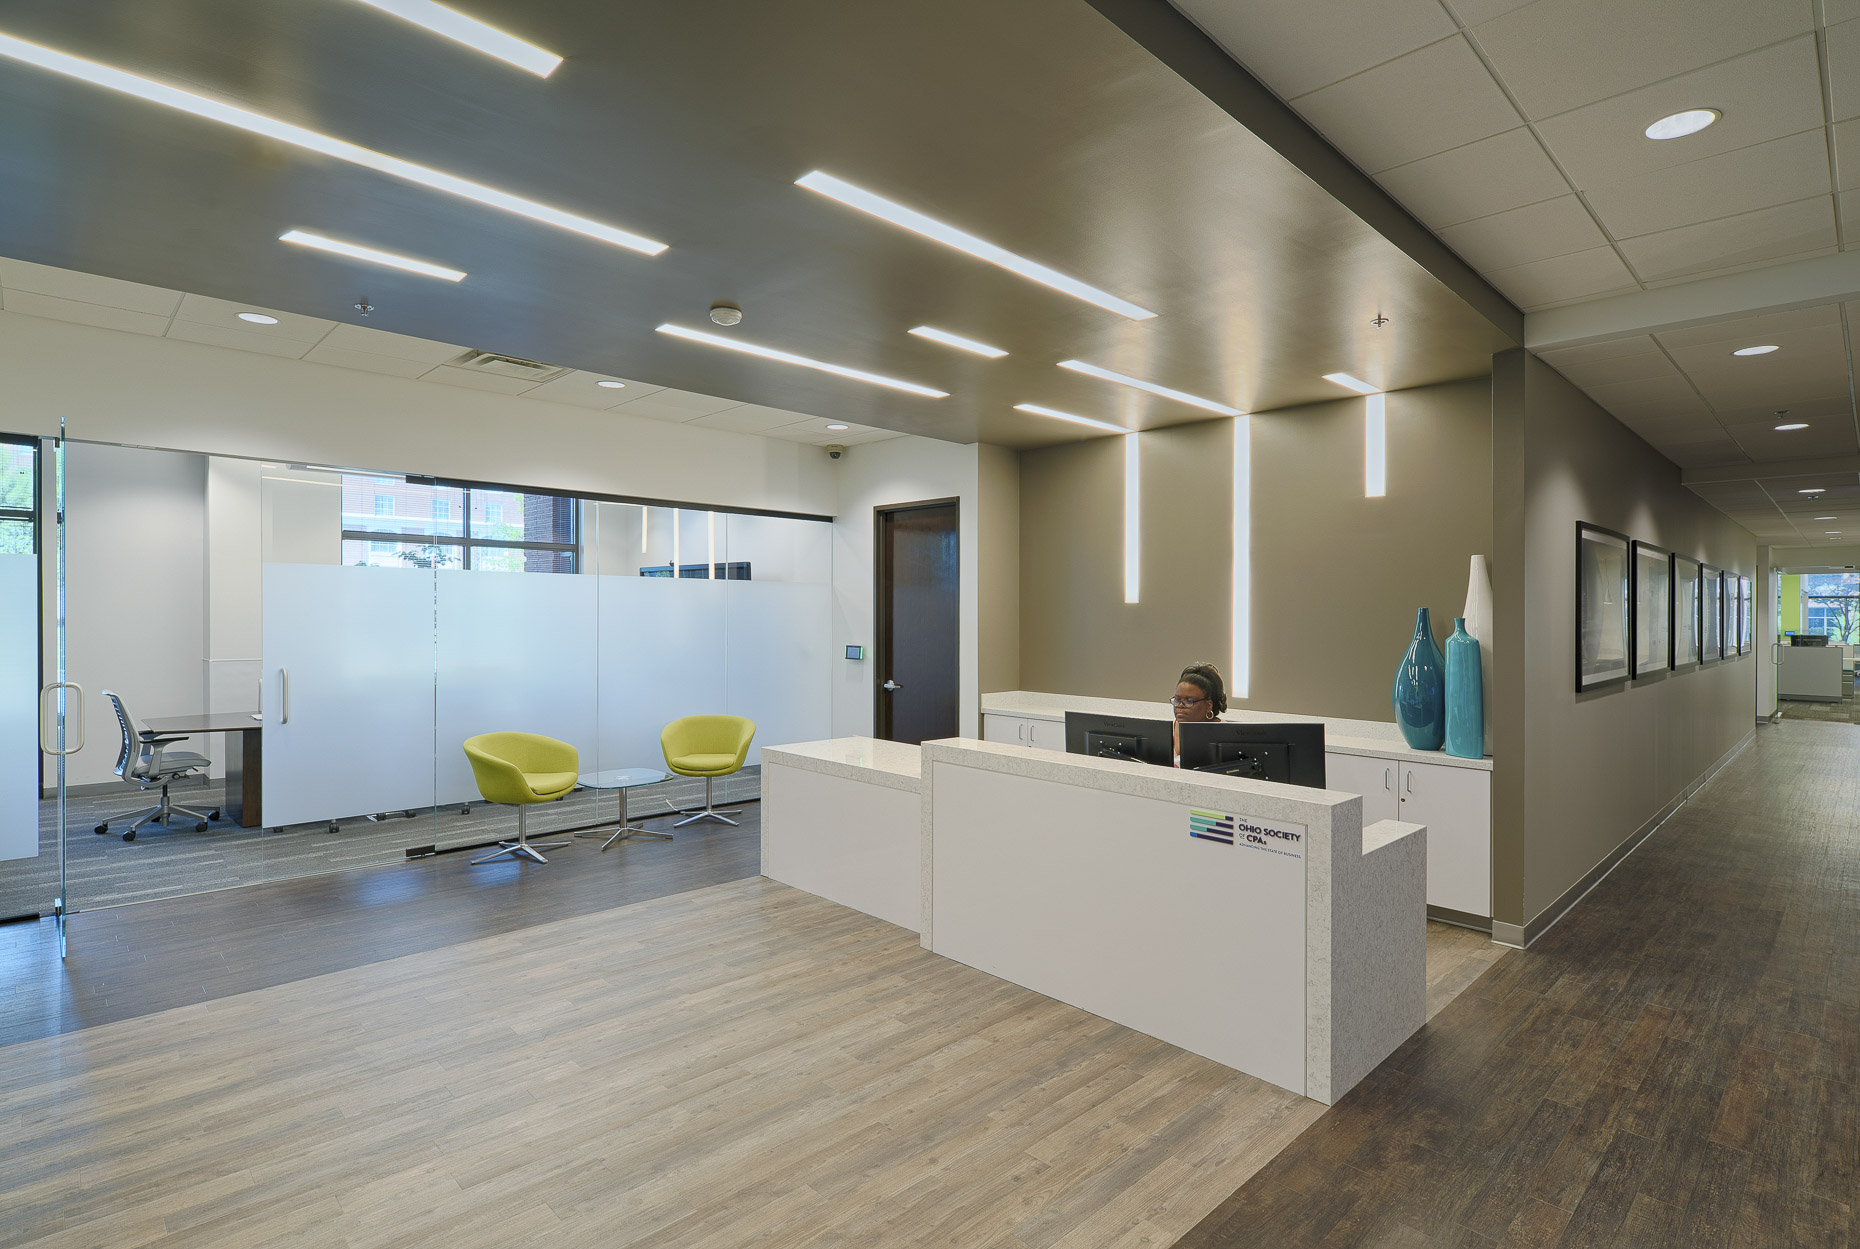 Ohio Society of CPA Corporate Office & Training Center by DesignGroup photographed by Lauren K Davis based in Columbus, Ohio